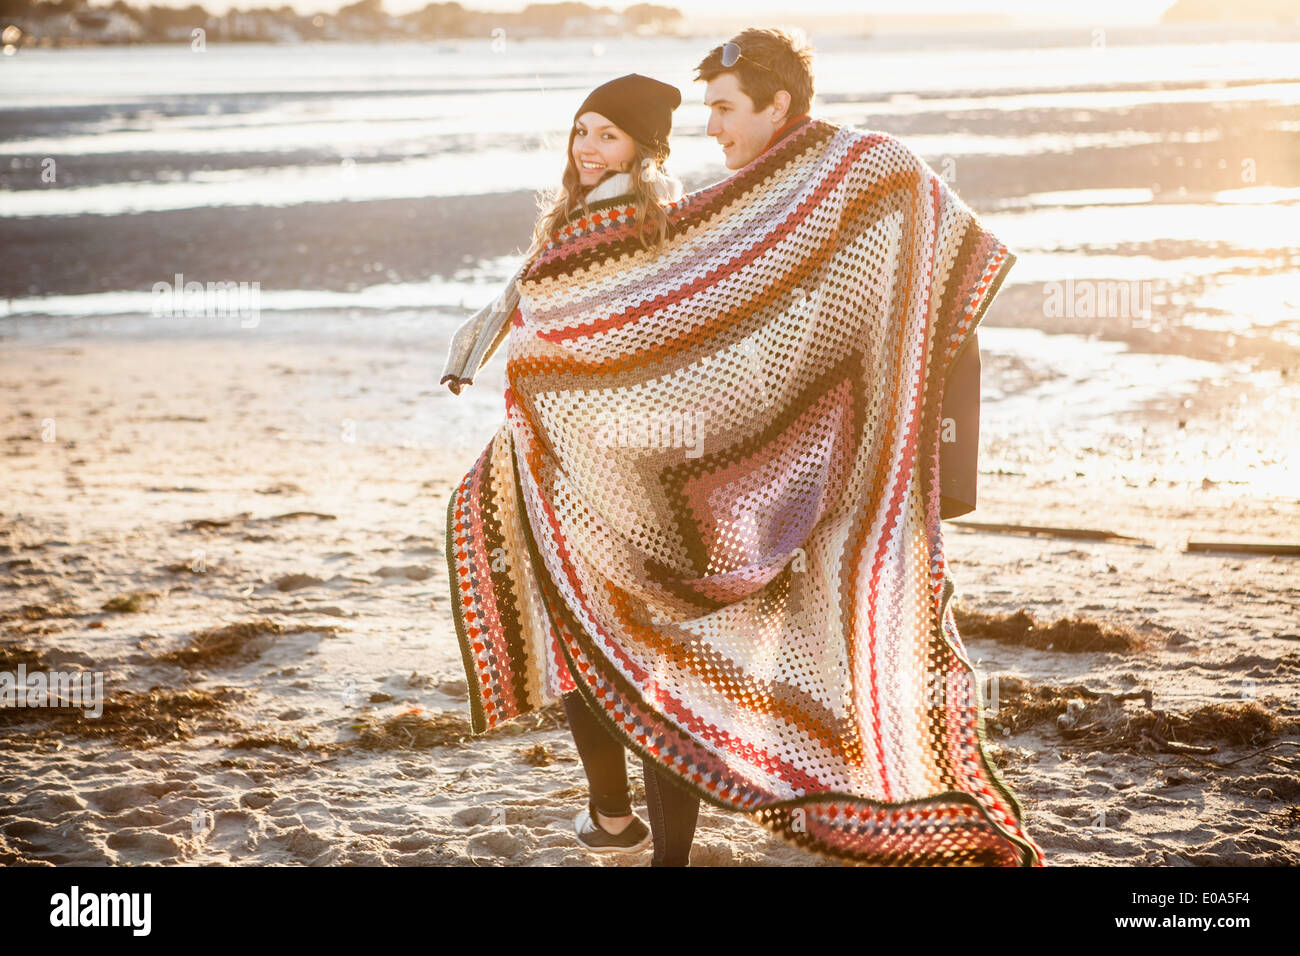 Couple wrapped in a blanket strolling on the beach - Stock Image